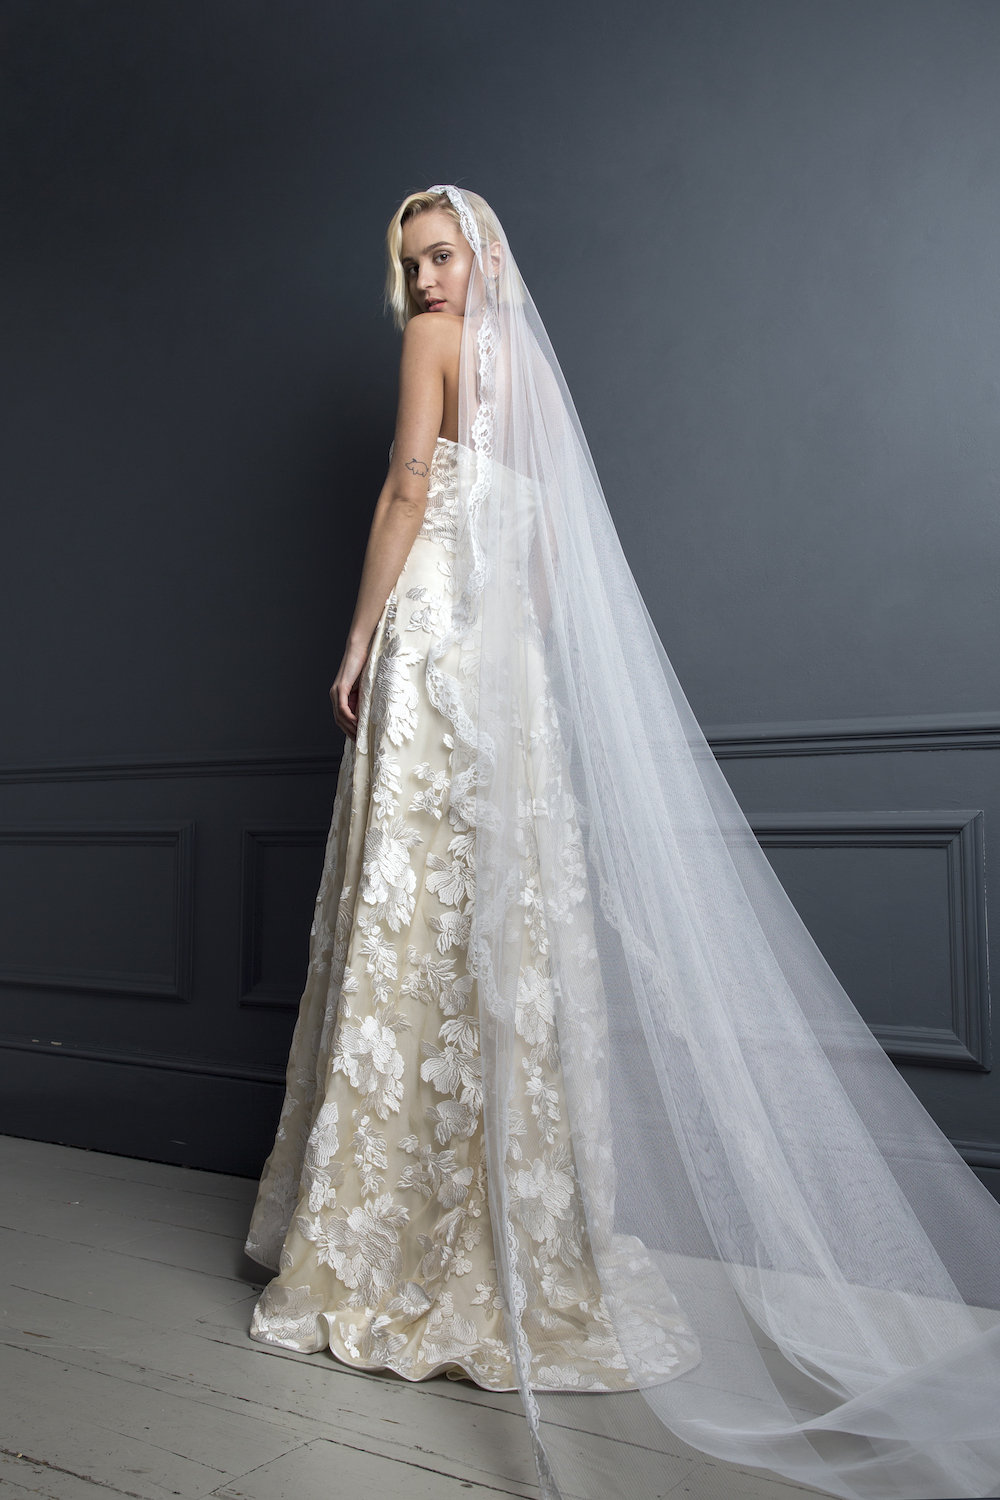 SYLVESTER & LACE BOARDER VEIL | WEDDING DRESS BY HALFPENNY LONDON